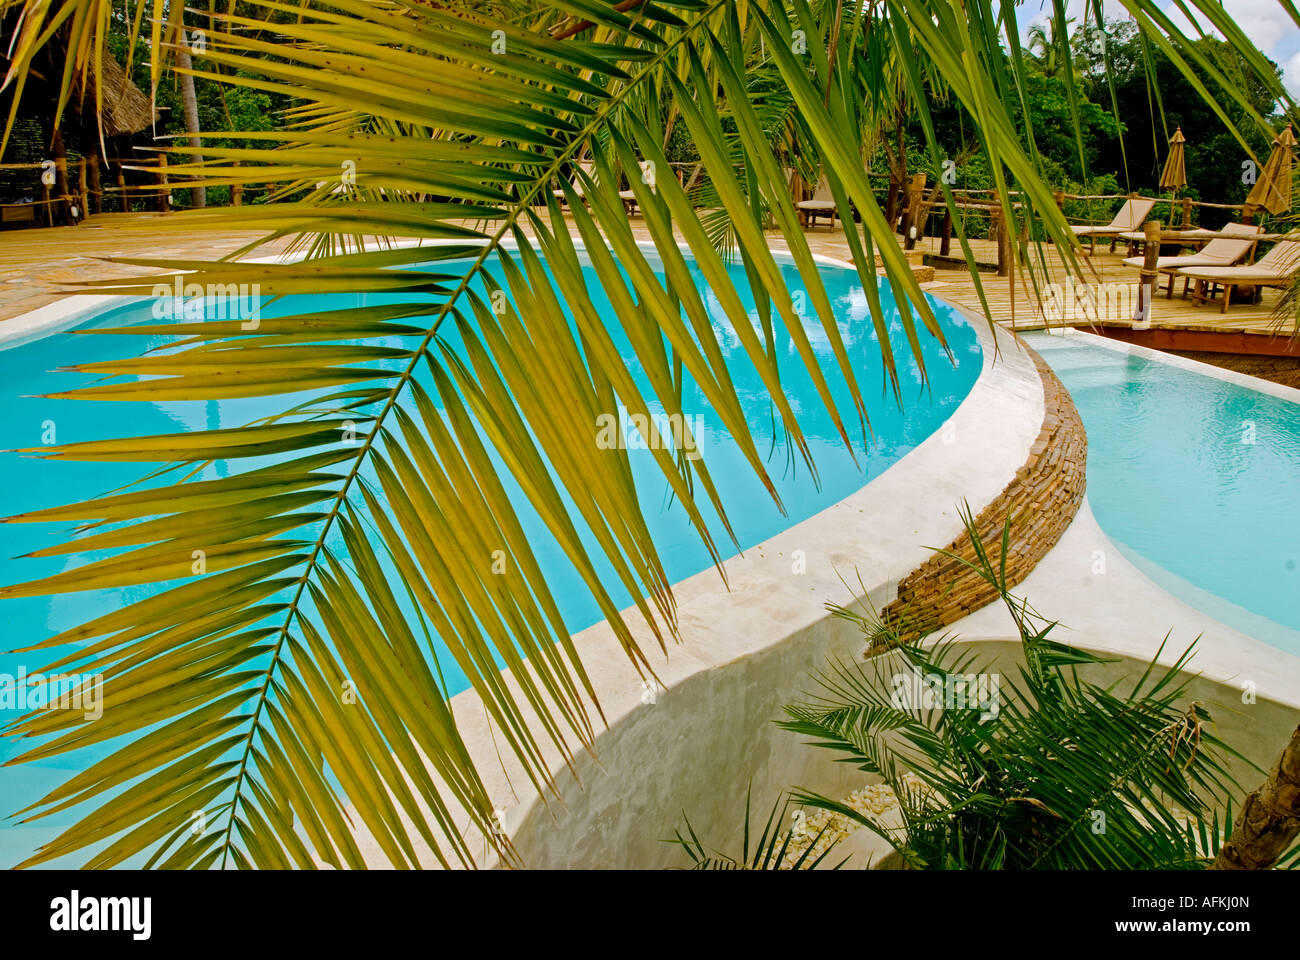 Pemba island stock photos pemba island stock images alamy Northeastern swimming pool distributors inc